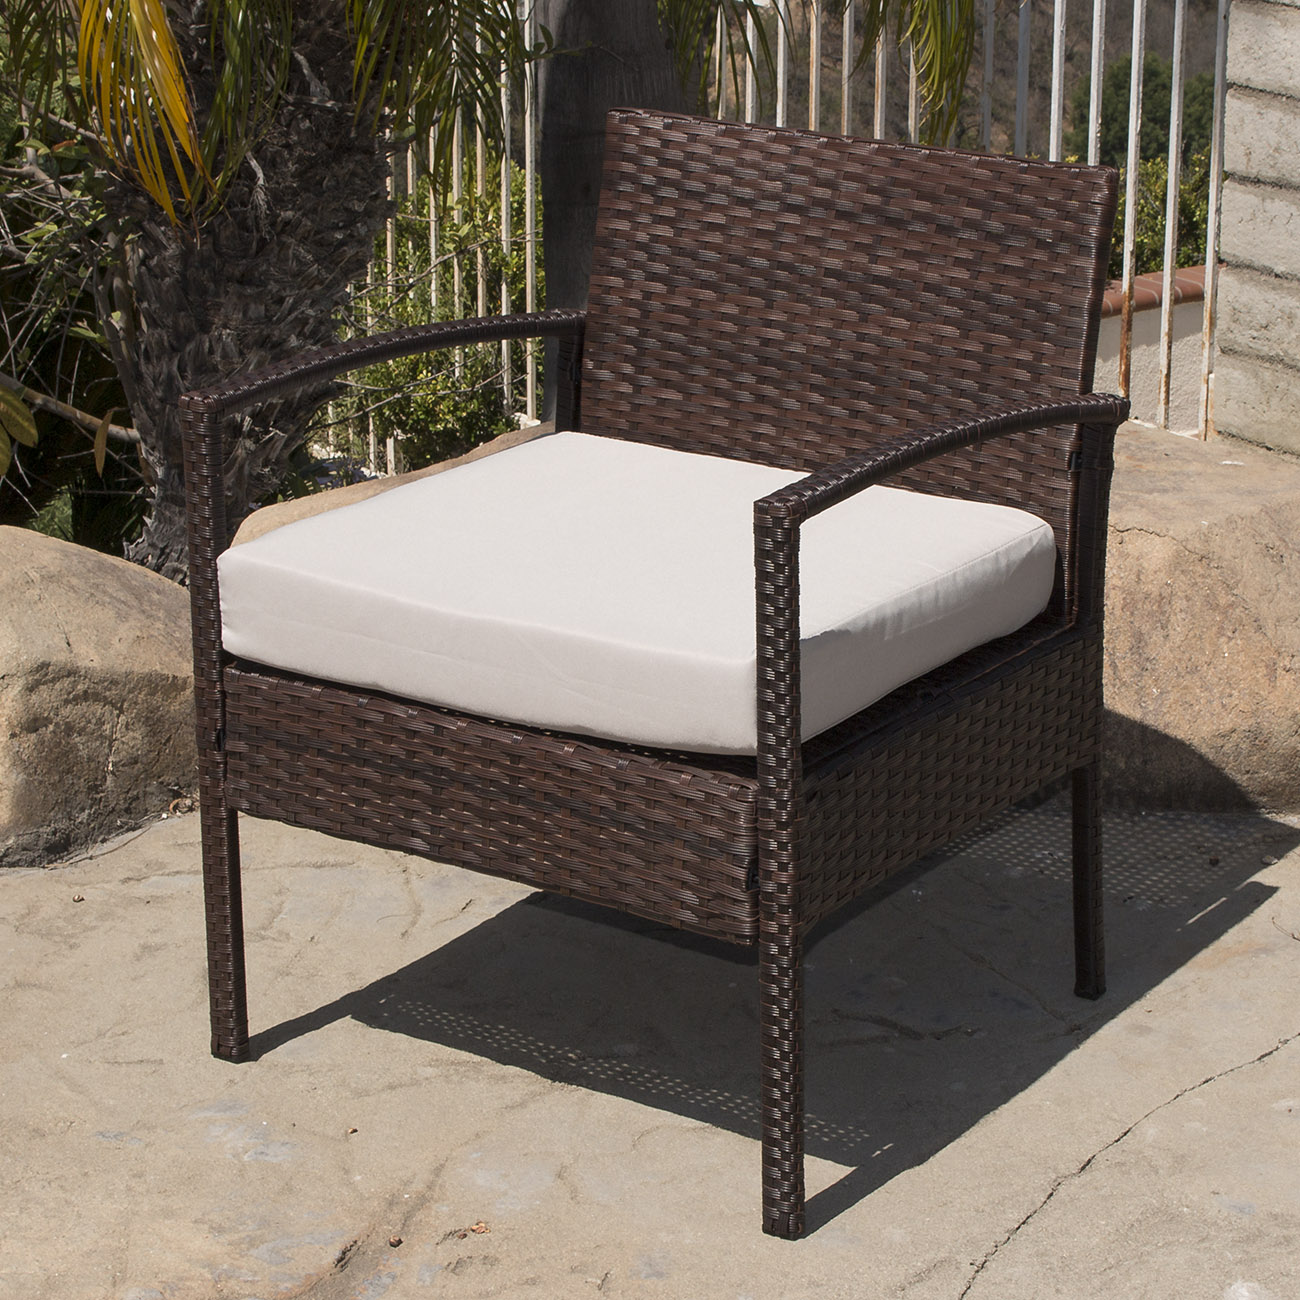 Rattan Garden Sofa Set Ebay 3pc Rattan Wicker Bistro Sofa Set Coffee Table Chair